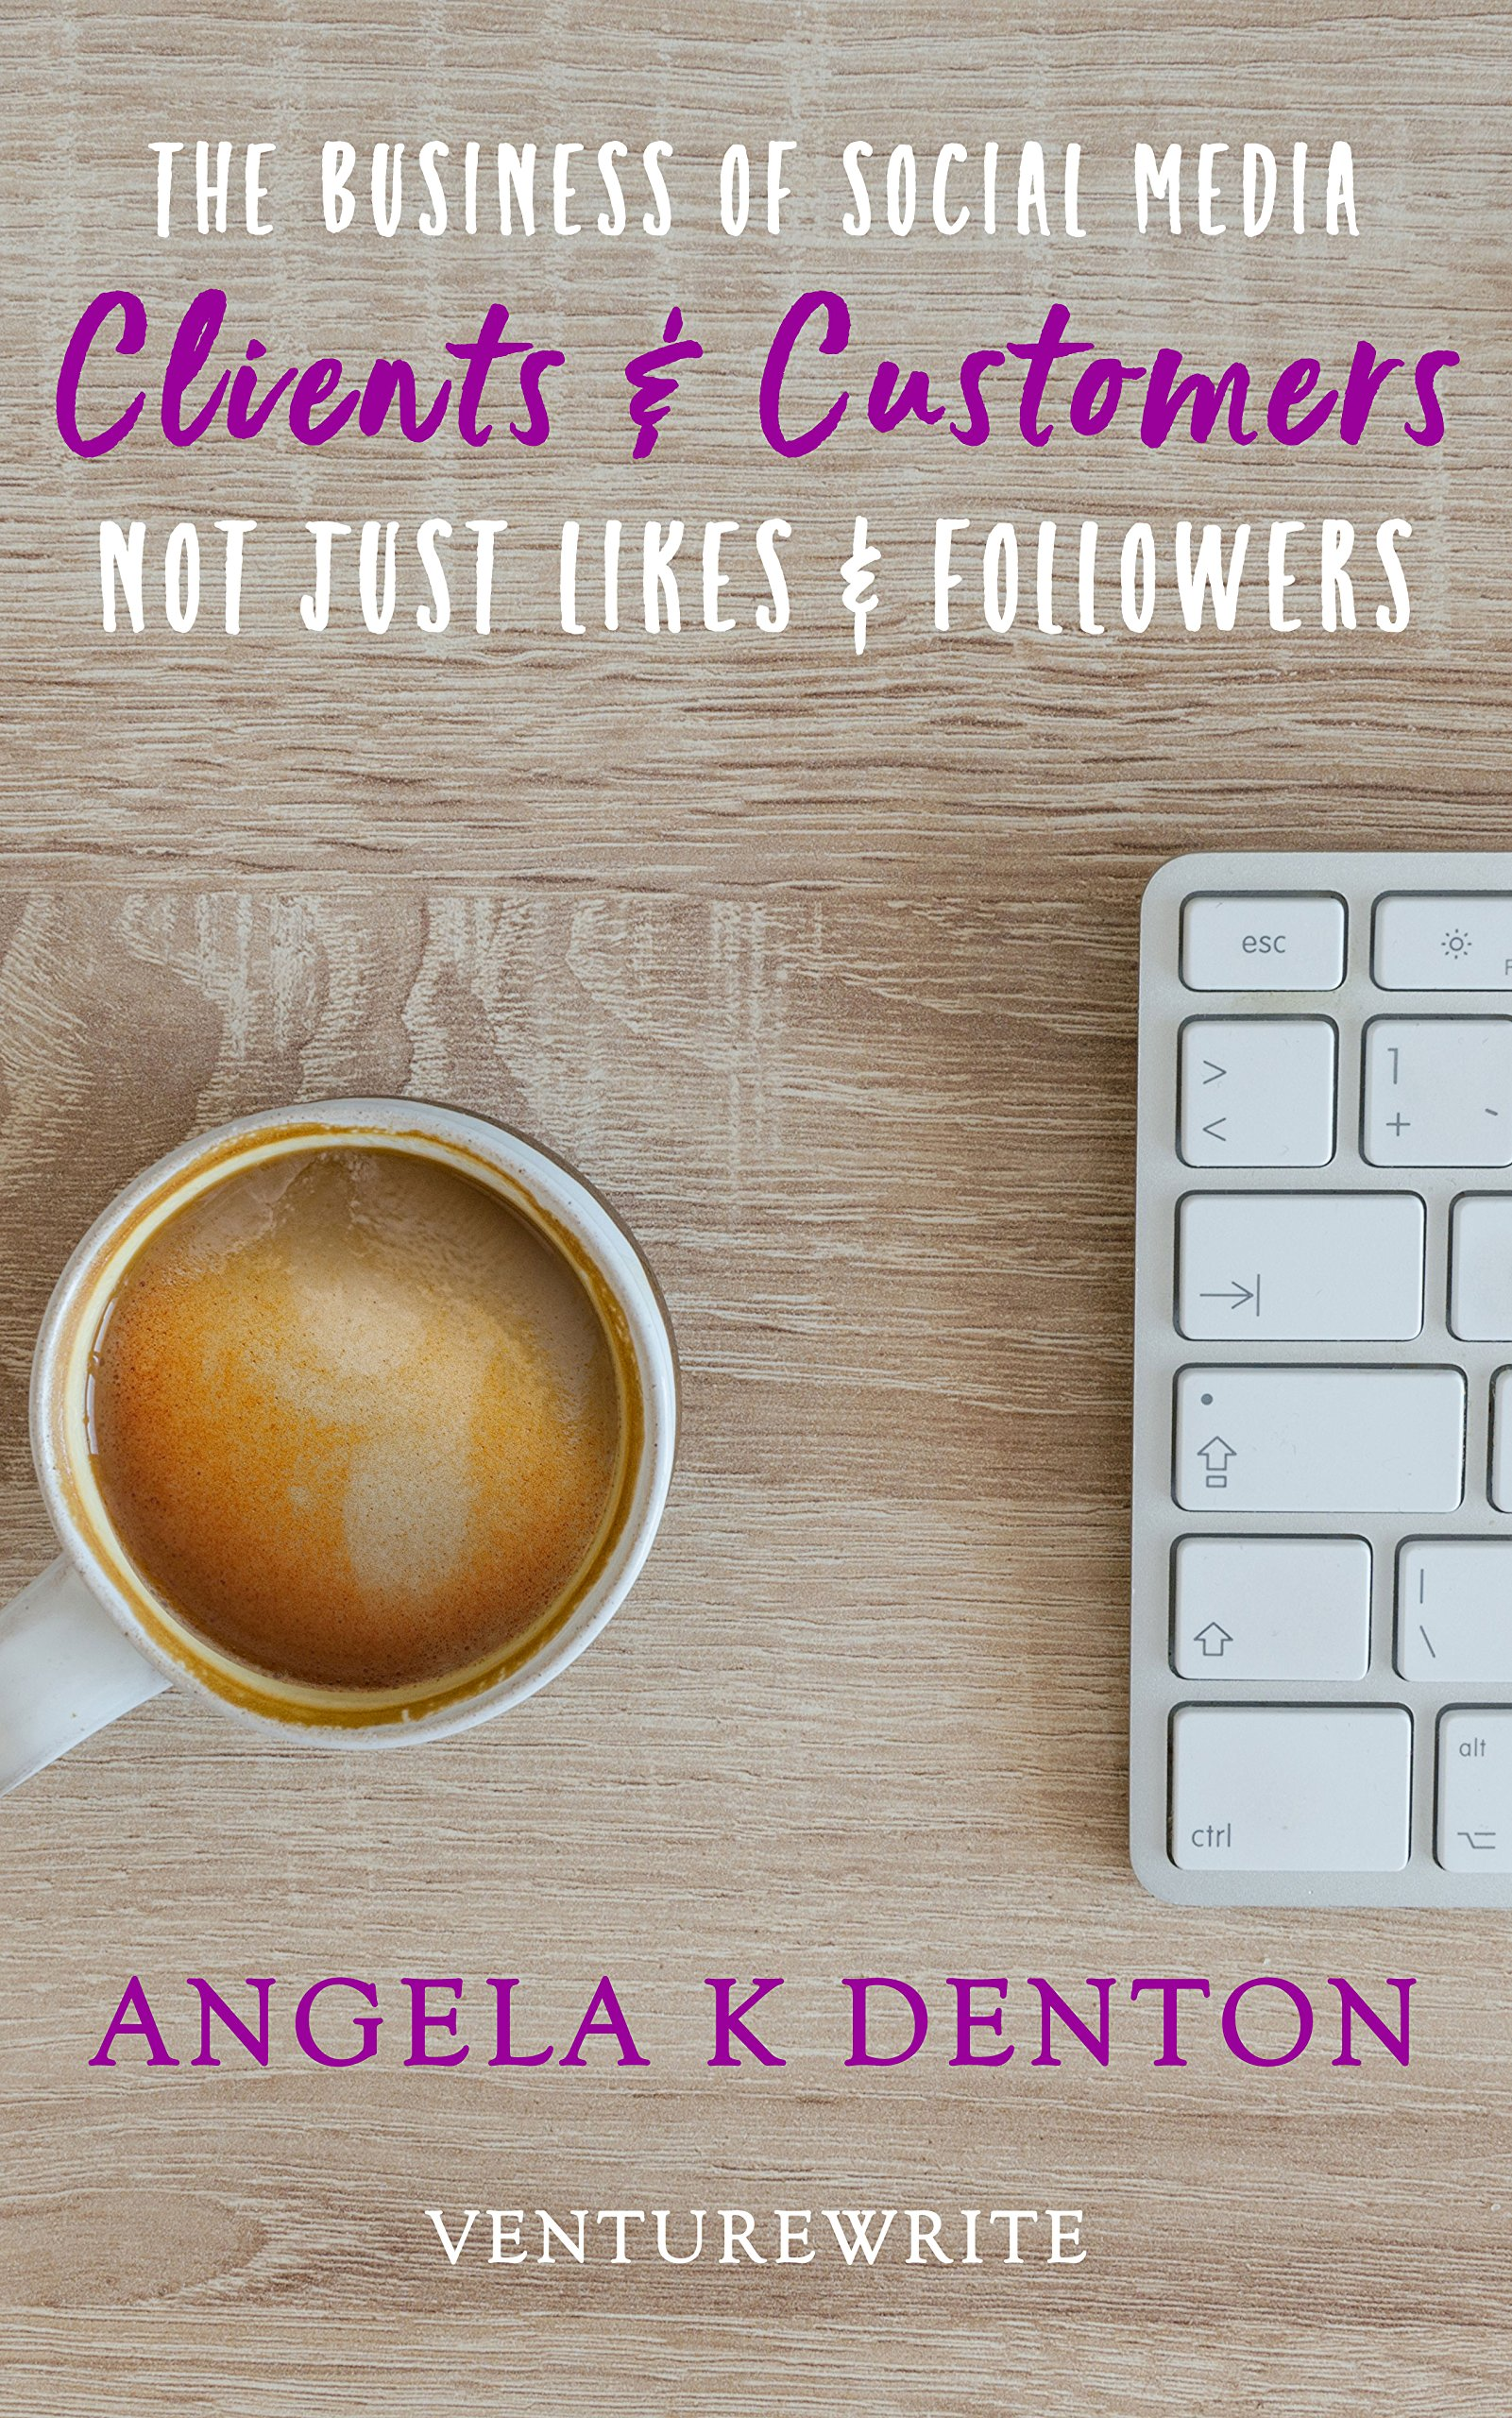 The Business of Social Media: Clients & Customers Not Just Likes & Followers